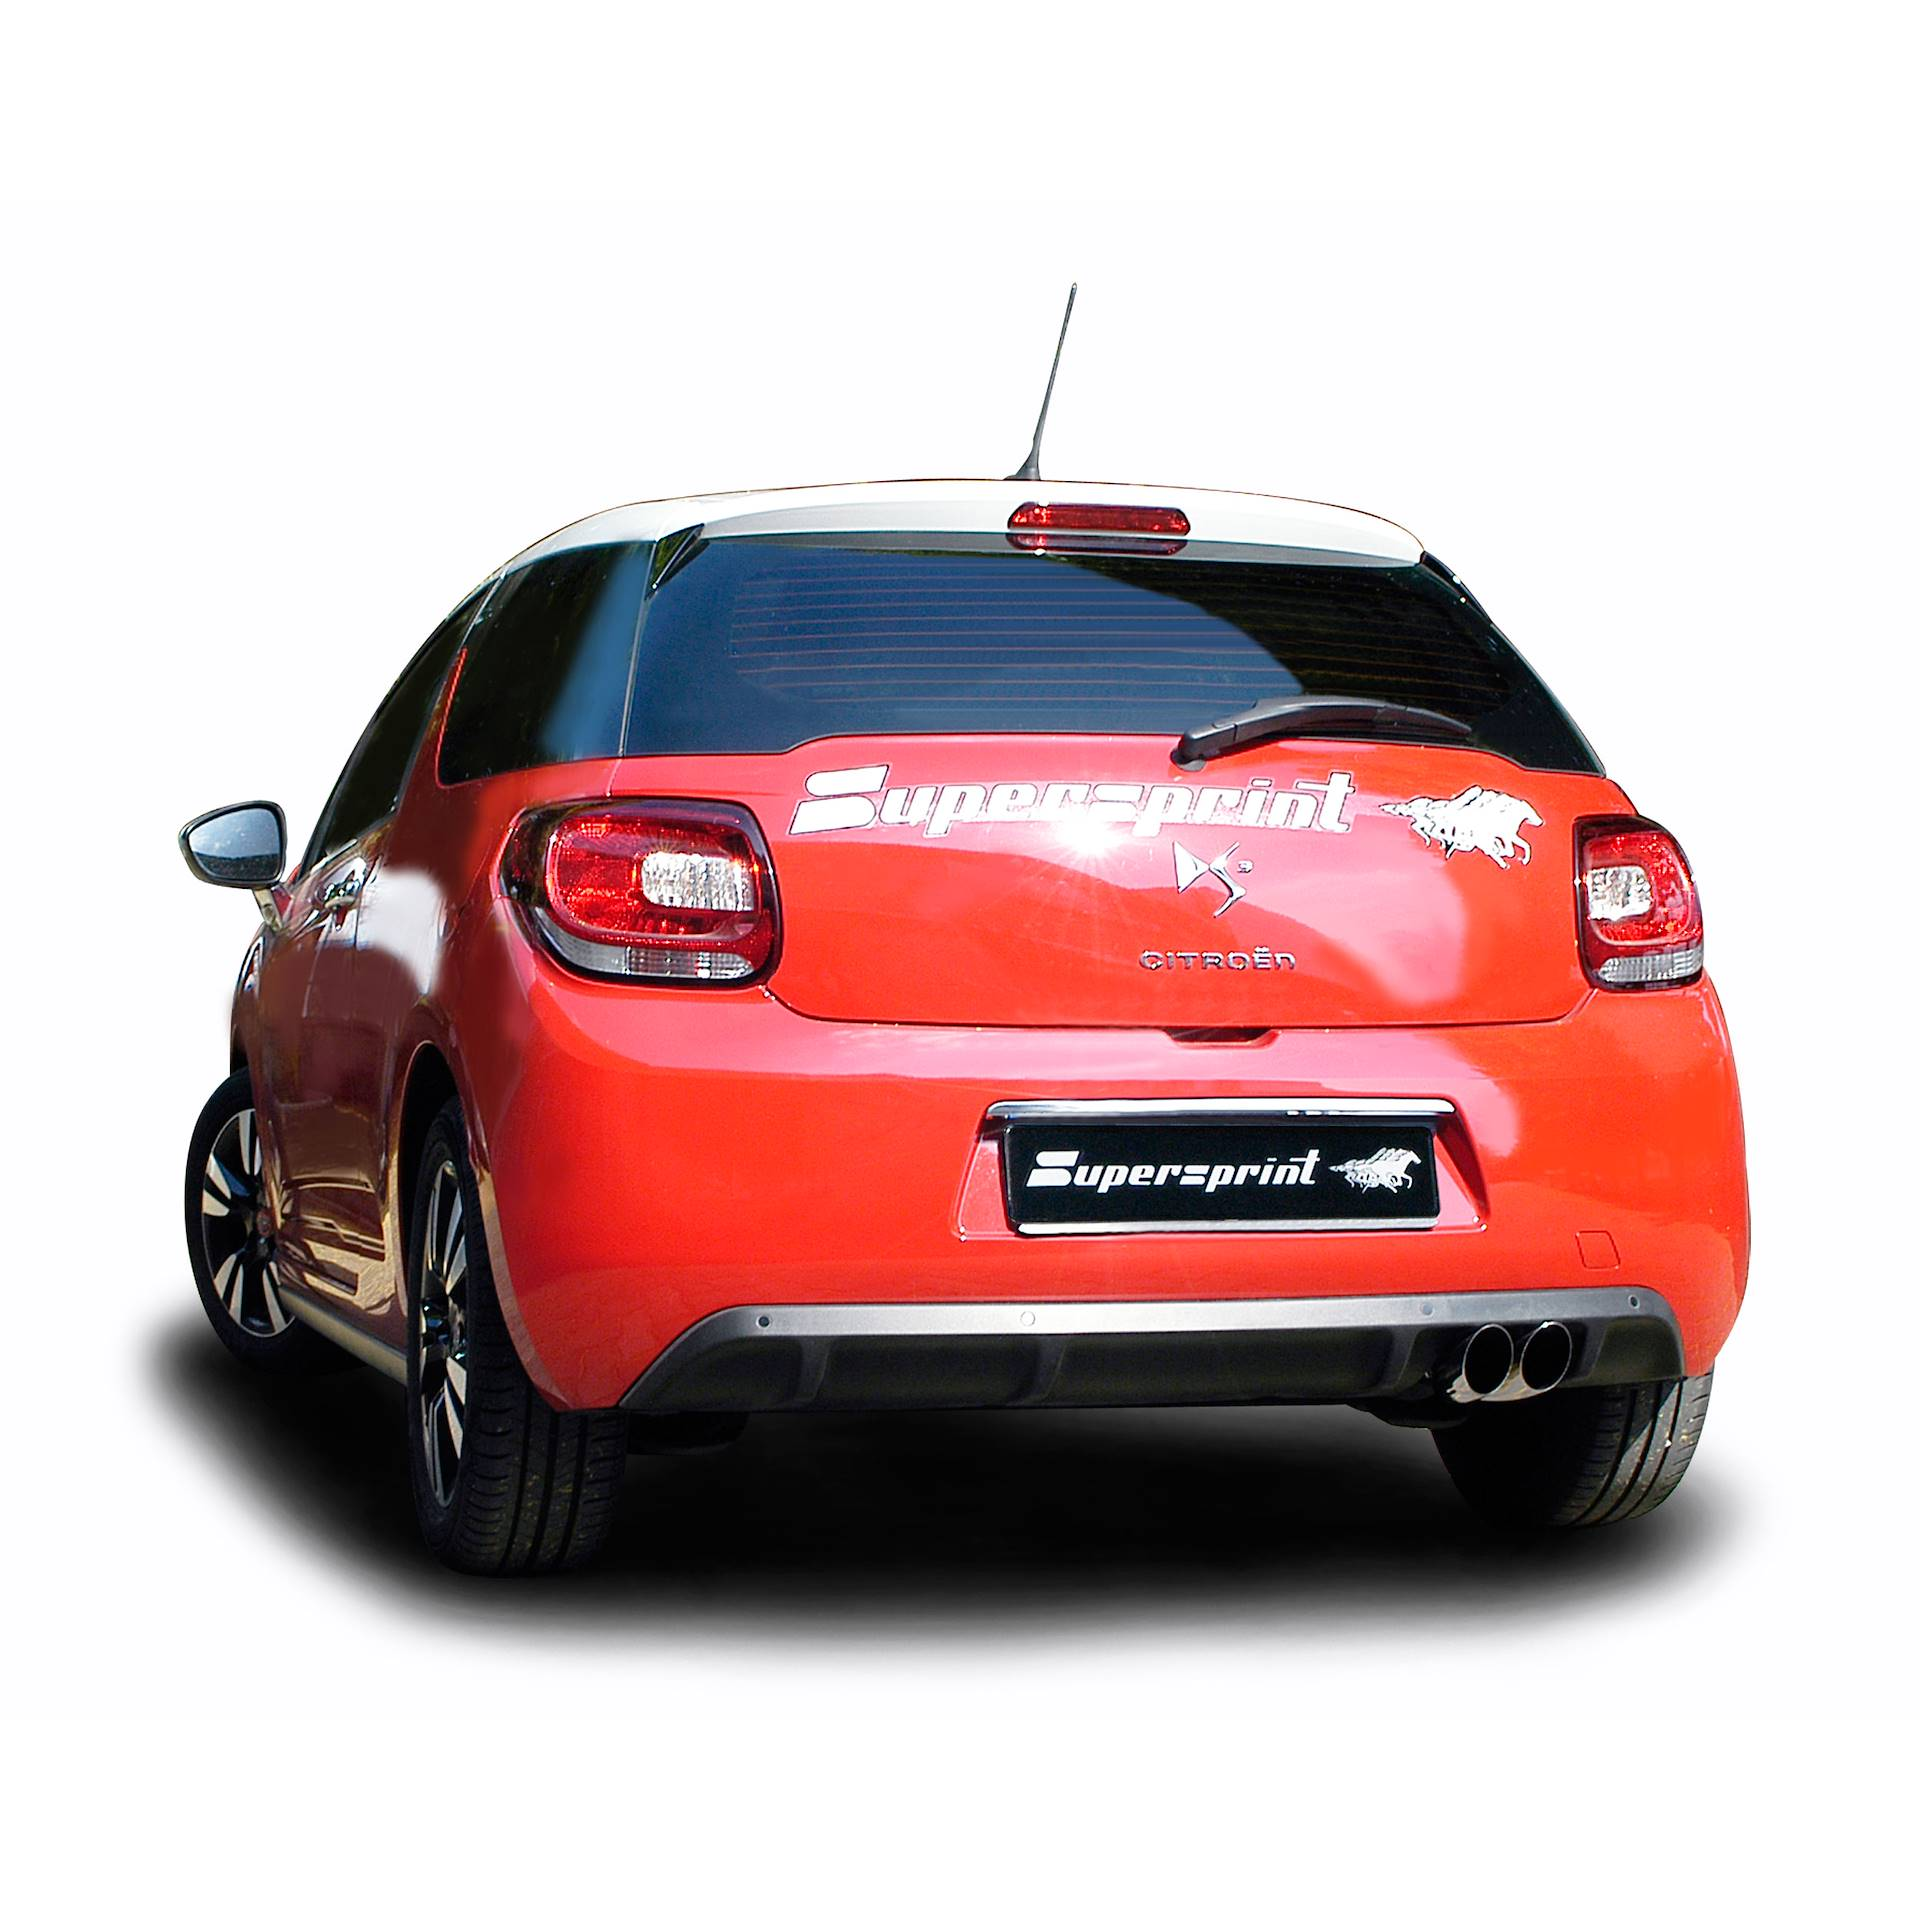 Citroen - CITROEN DS3 VTi 1.4i 16v (95 PS) 2010 ->